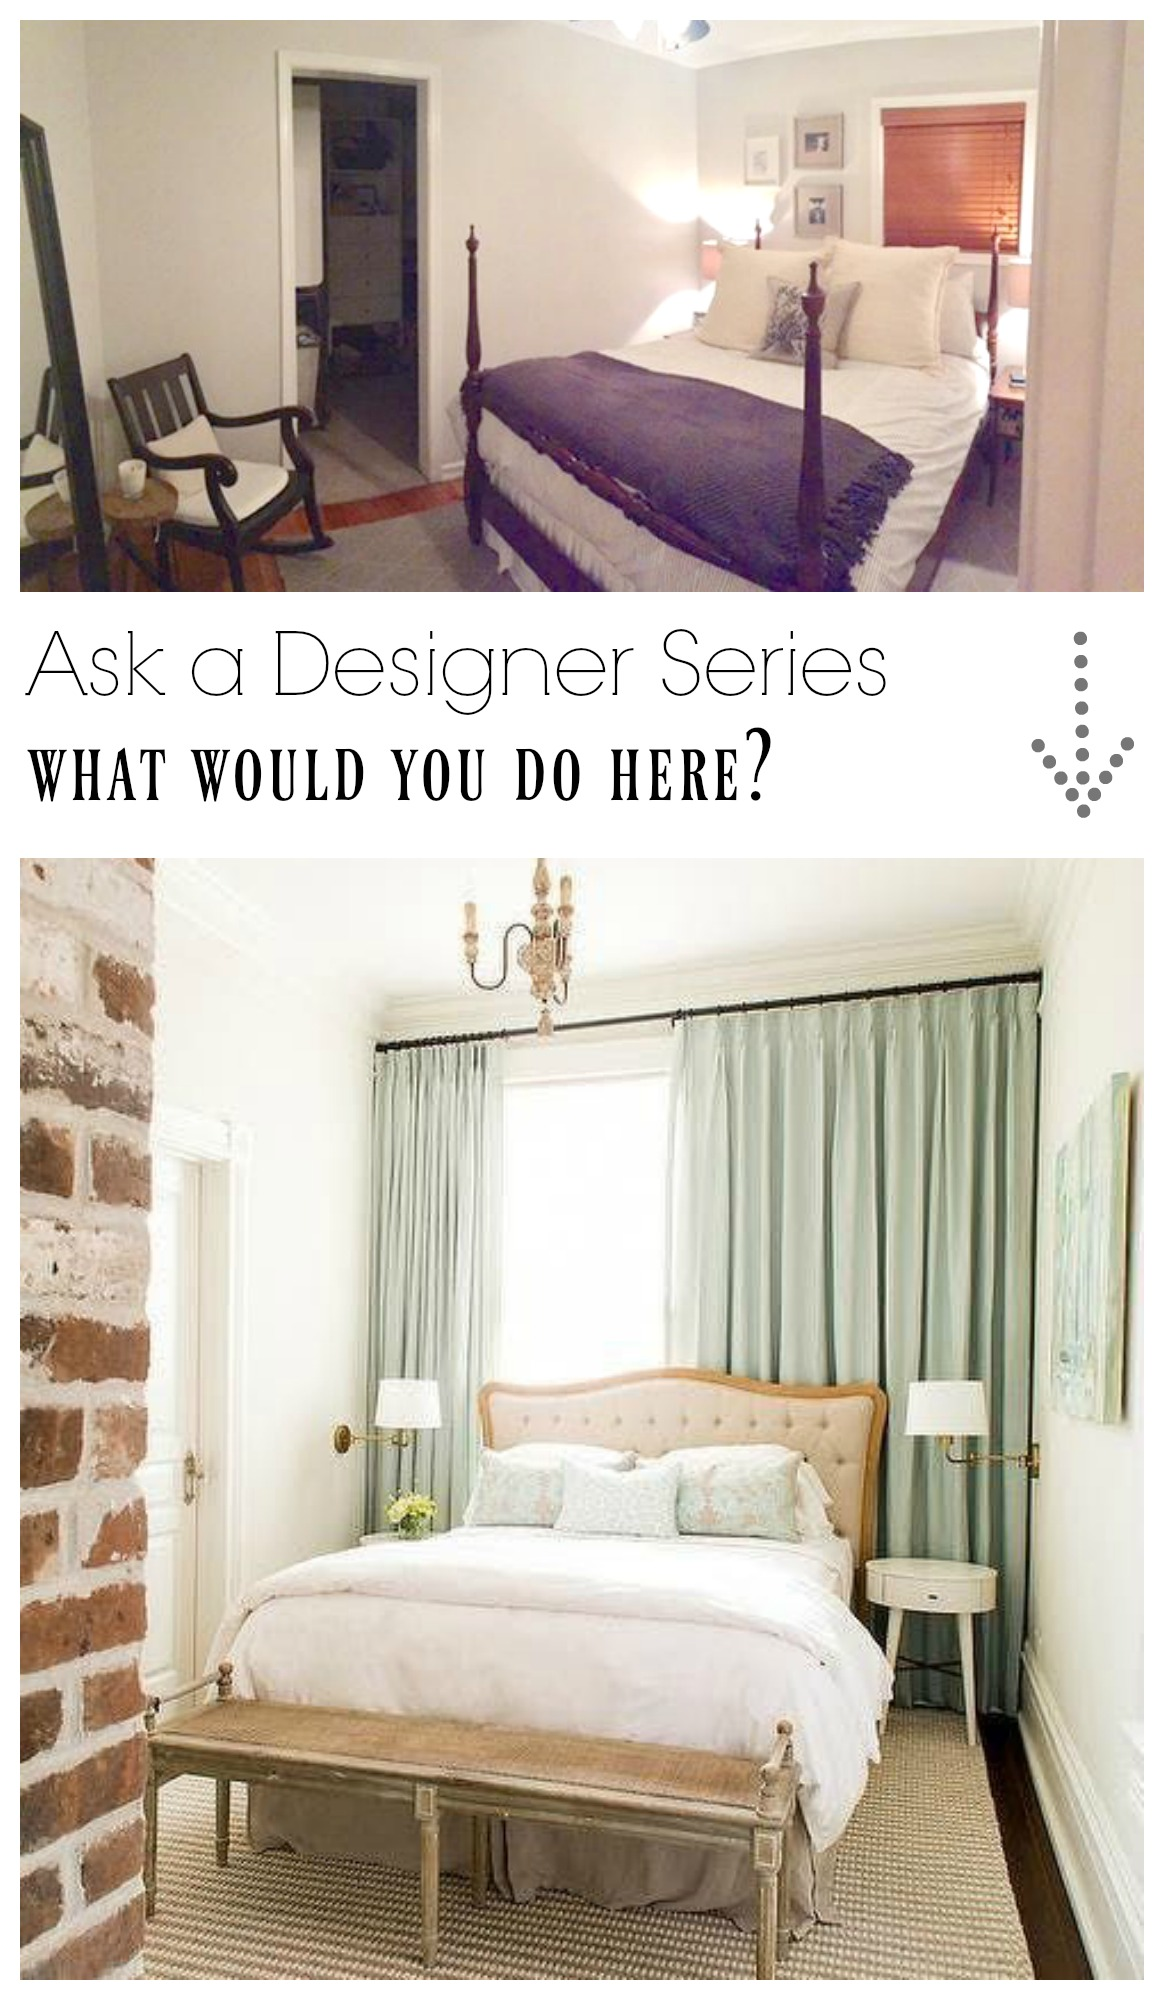 Ask a Designer Series- Paint, Rugs and Small Spaces ...